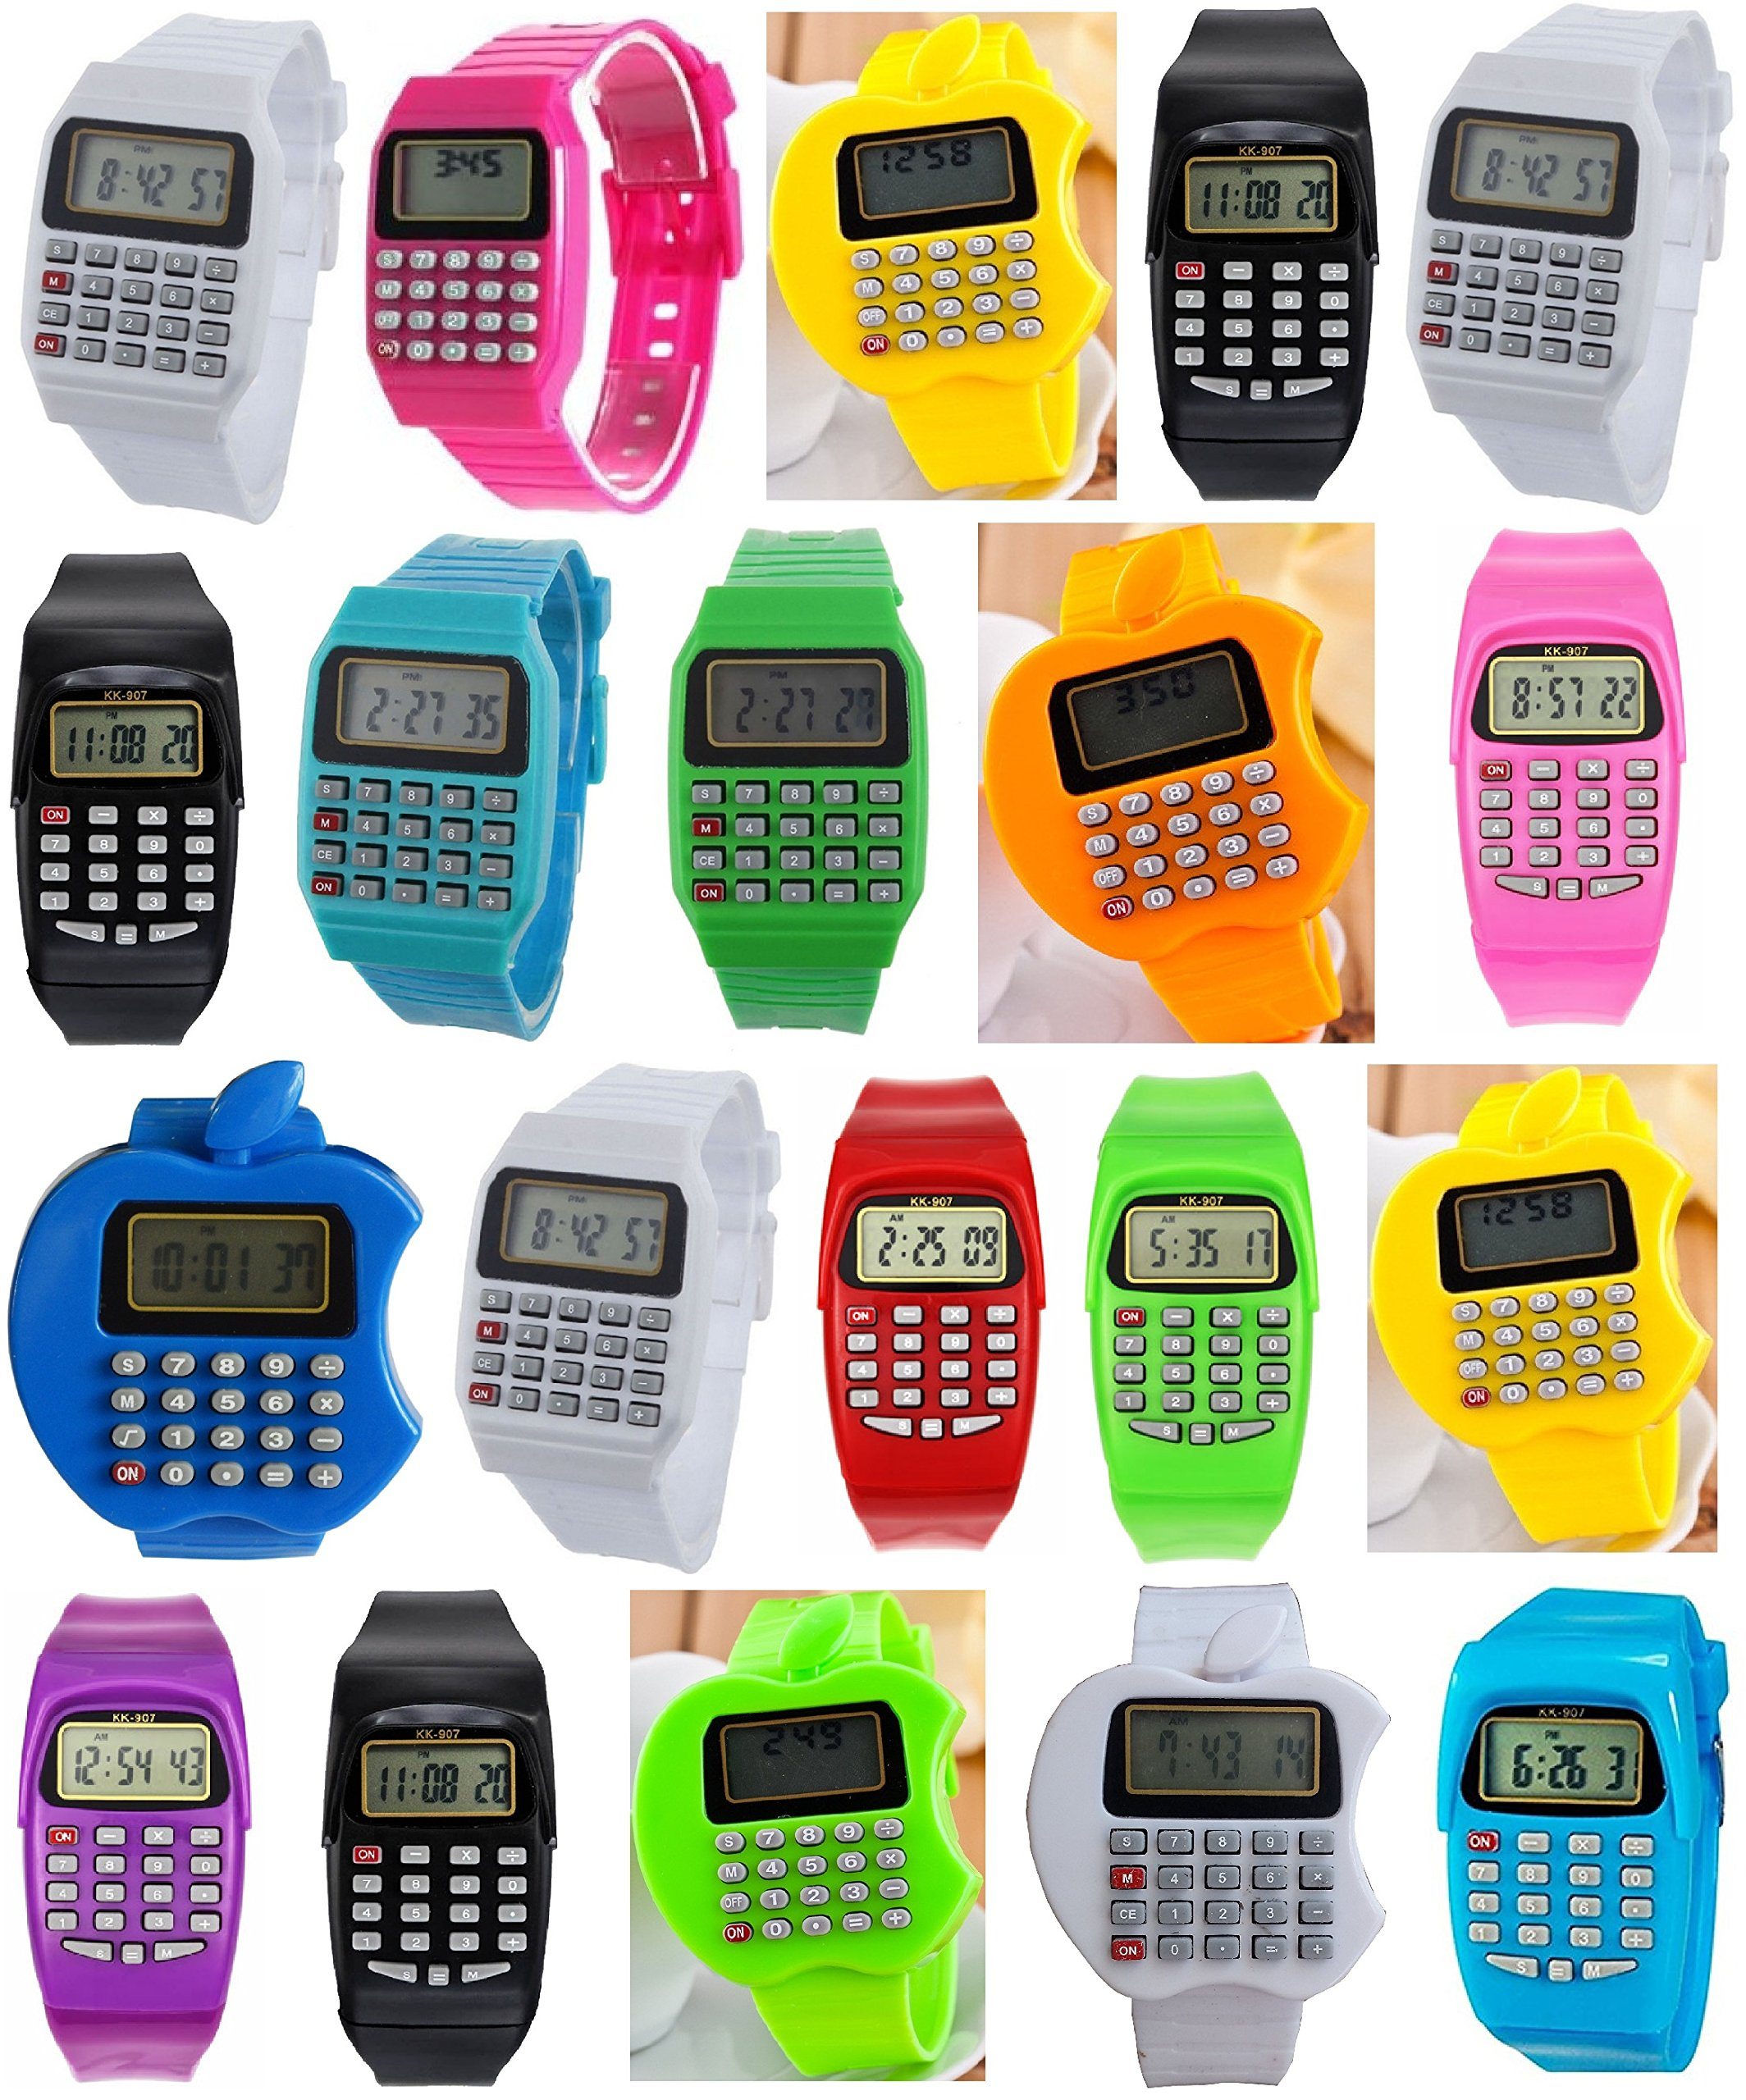 Pappi Boss LED Digital Wrist watches LED Bands Birthday Party Return Gifts Birthday Gifts for kids kids favourite gifts for boys gifts for girls Set of 20 Multicolor LED Digital Bands LED Gift watches